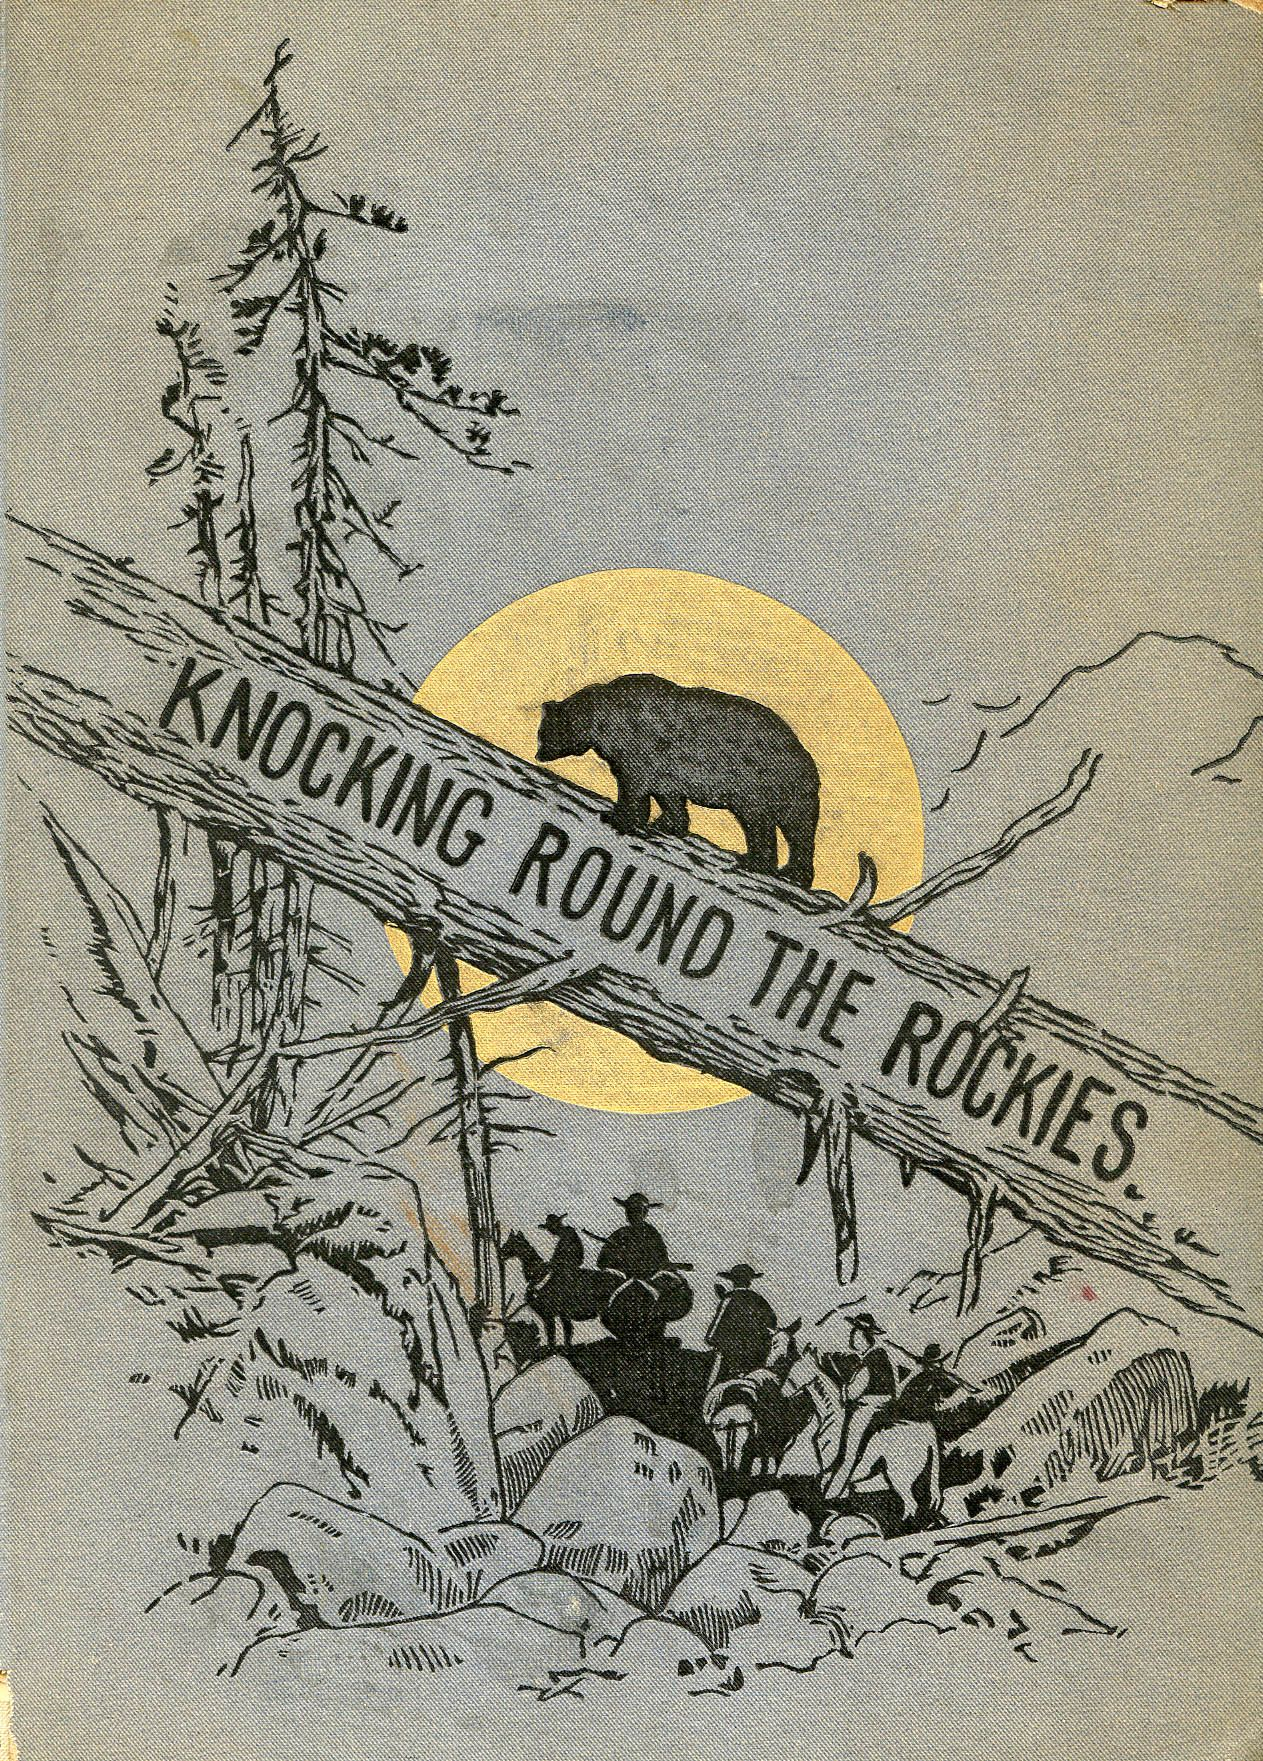 Knocking Round the Rockies by Ernest Ingersoll (1897)   Book ...